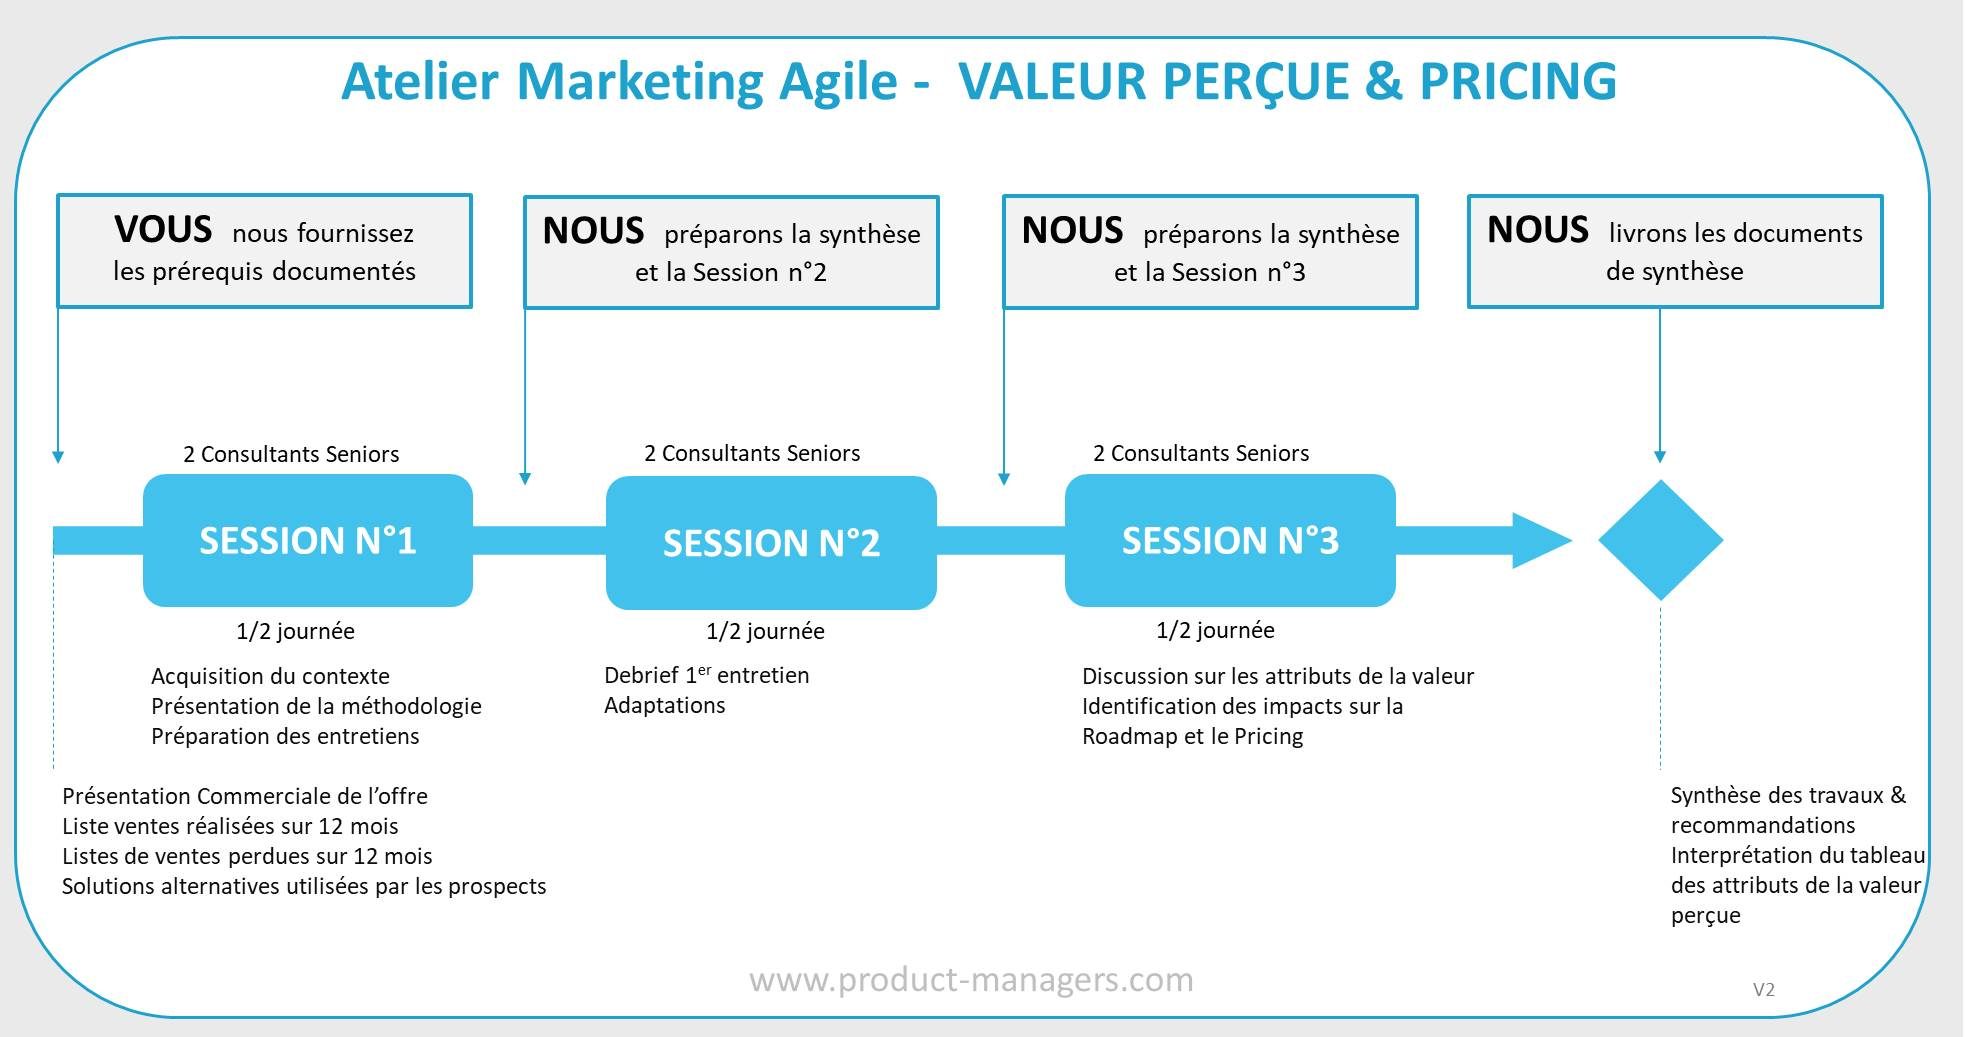 atelier-marketing-agile-valeur-percue-pricing-v2